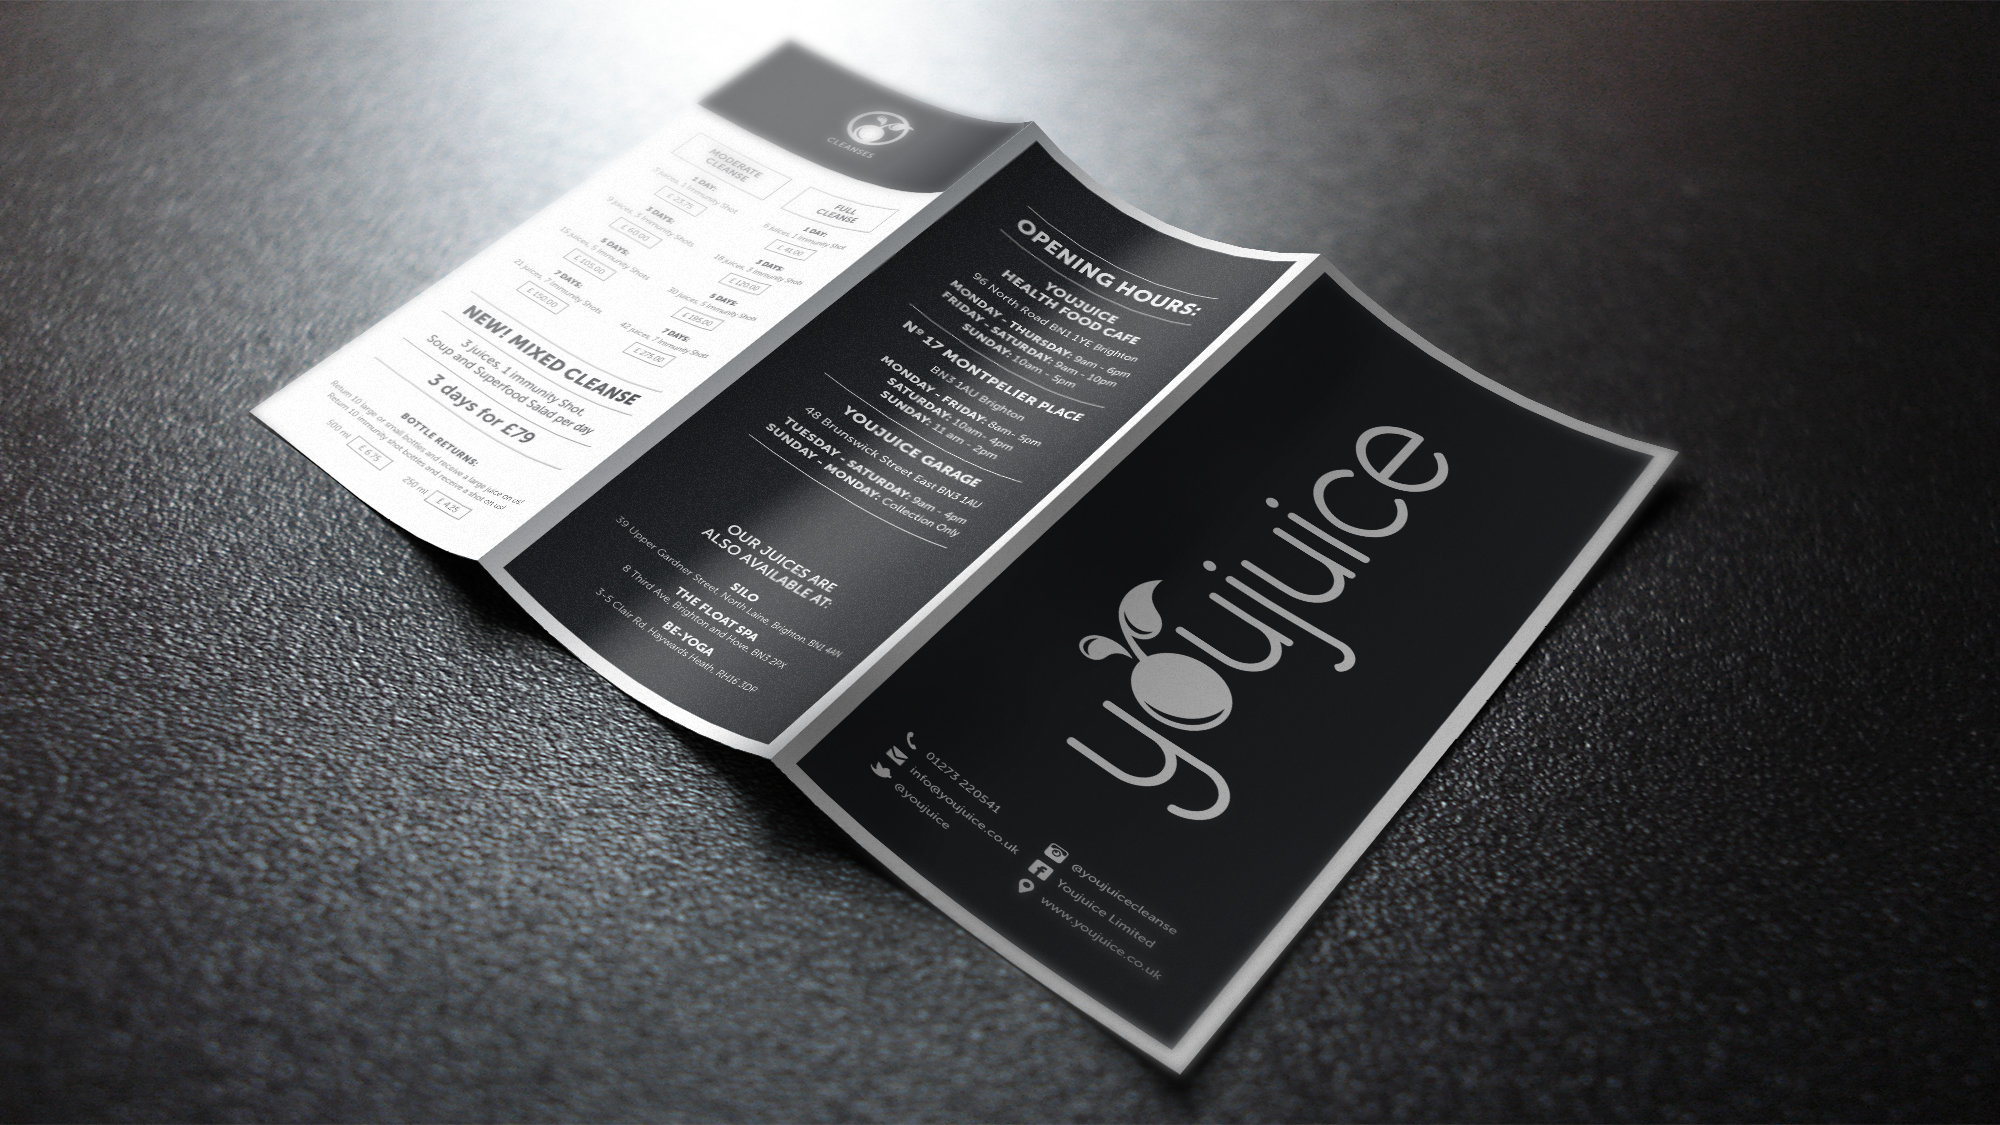 Brand_republica_leaflet_design_youjuice_back_view.jpg